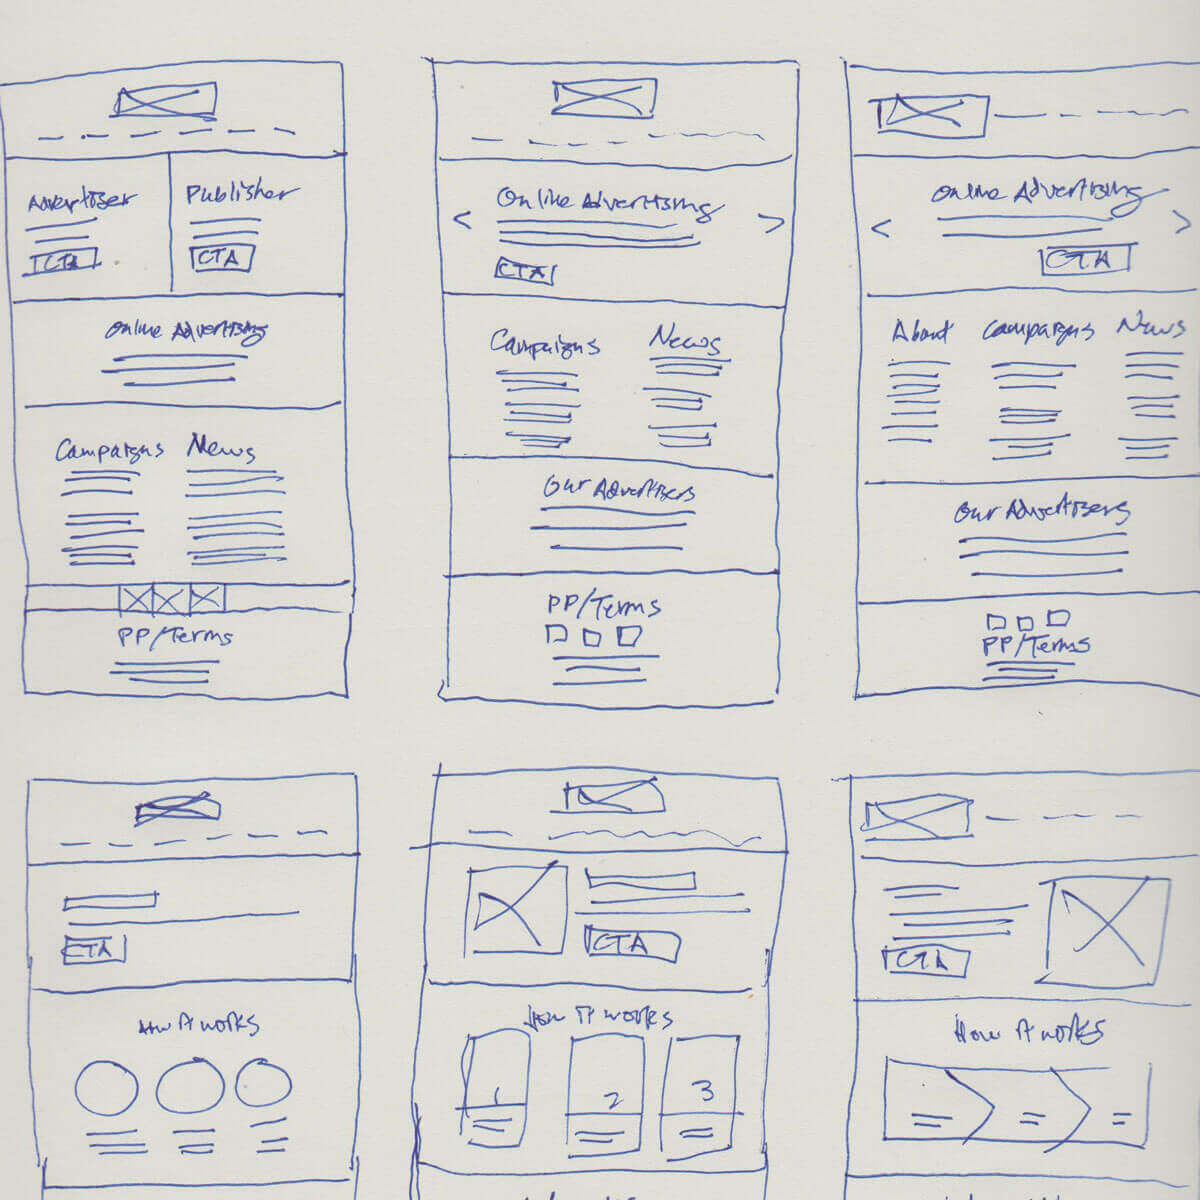 Guppy Media website sketches